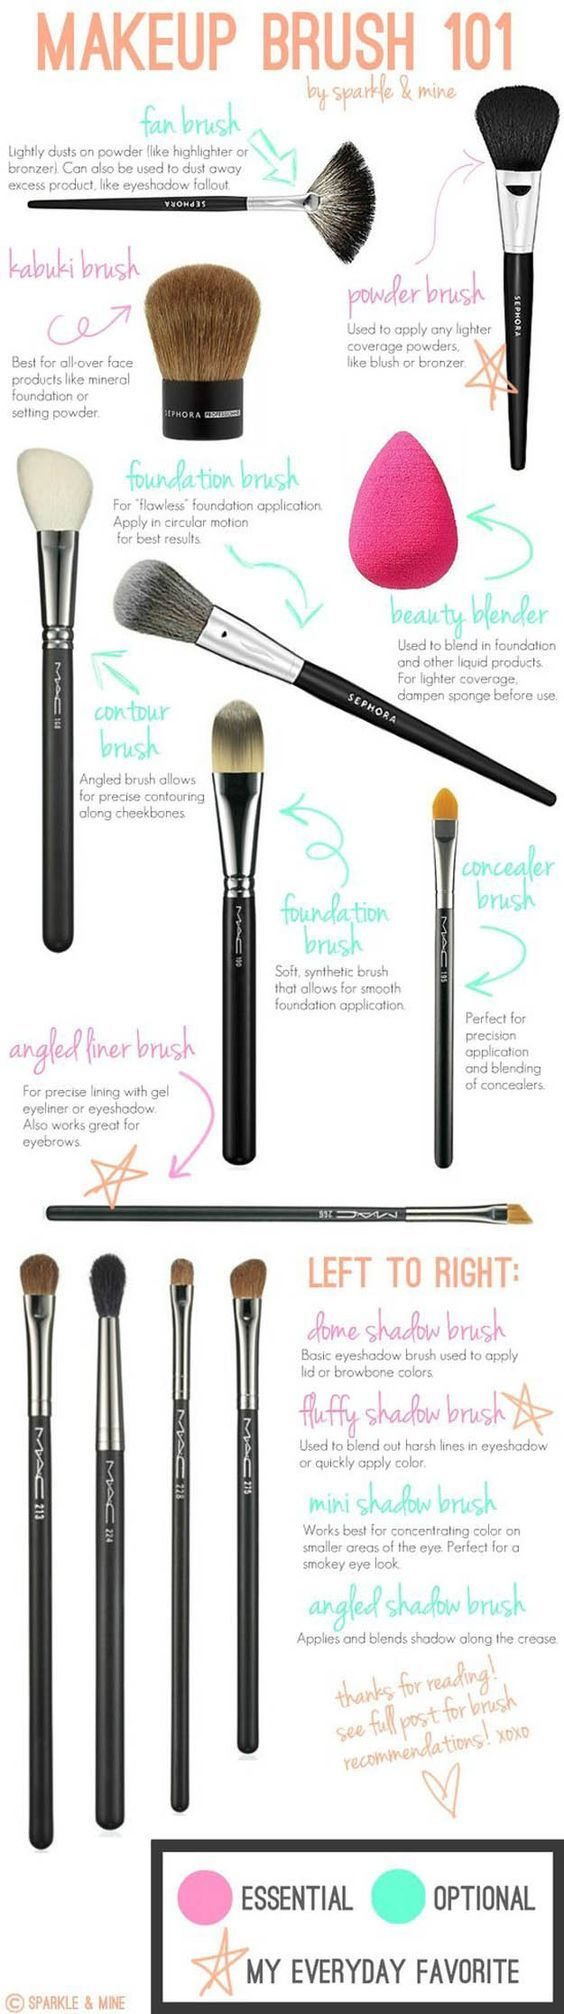 Makeup Brushes 101 | Best Makeup Brush Sets by Makeup Tutorials at http://makeuptutorials.com/makeup-tutorials-beauty-tips: